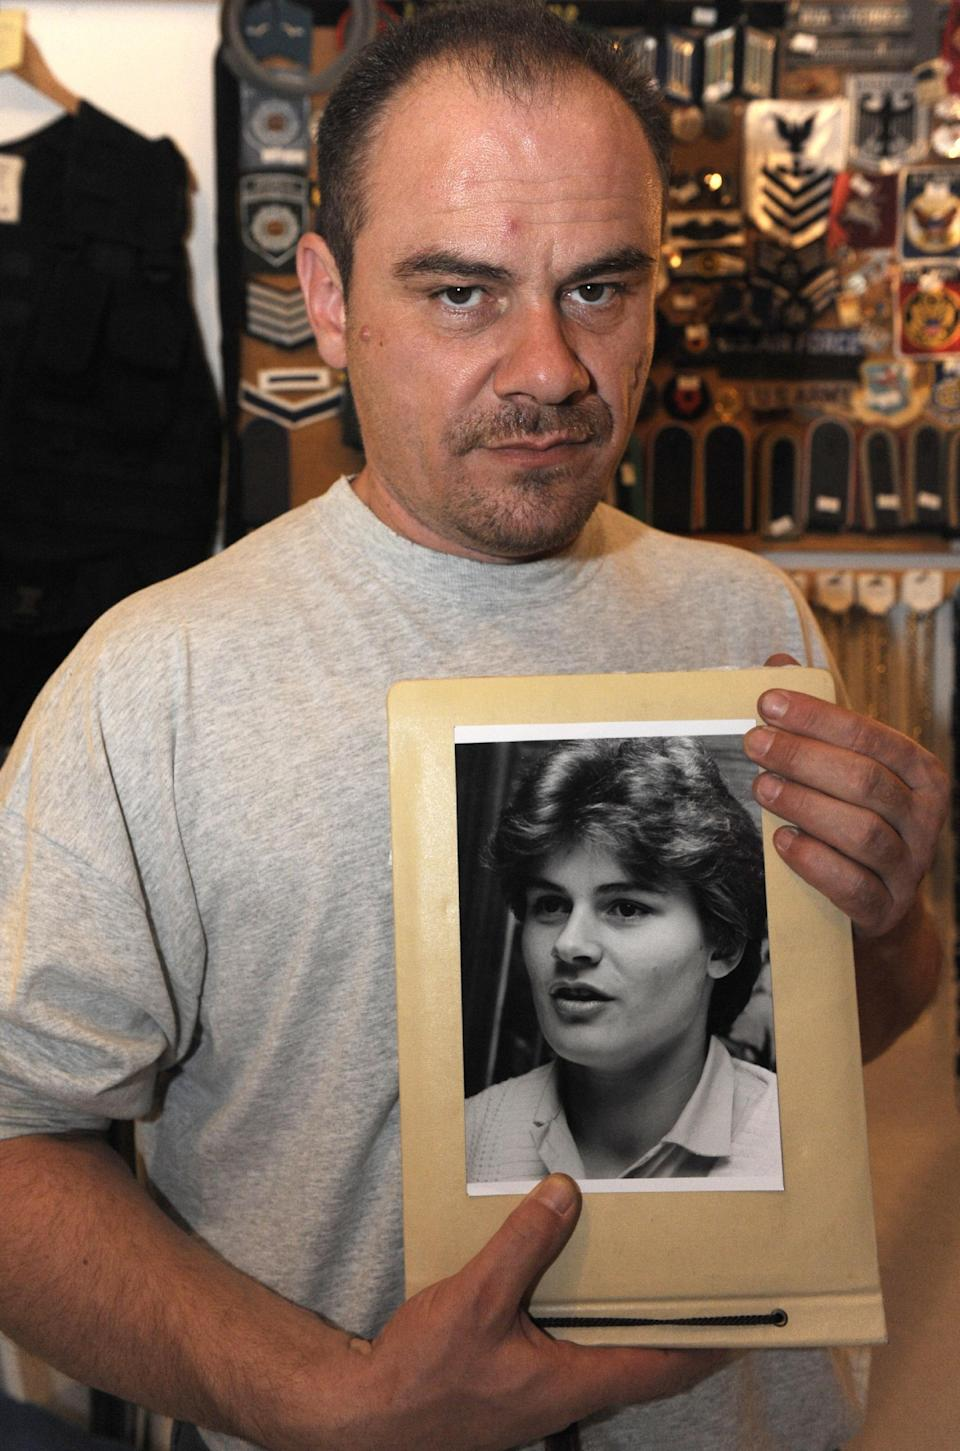 Former German shot putter Andreas Krieger, who competed as a woman (Heidi Krieger) on the East German athletics team, poses with a picture of himself in 1987 during an interview in Magdeburg, September 22, 2009 (AFP Photo/John Macdougall)